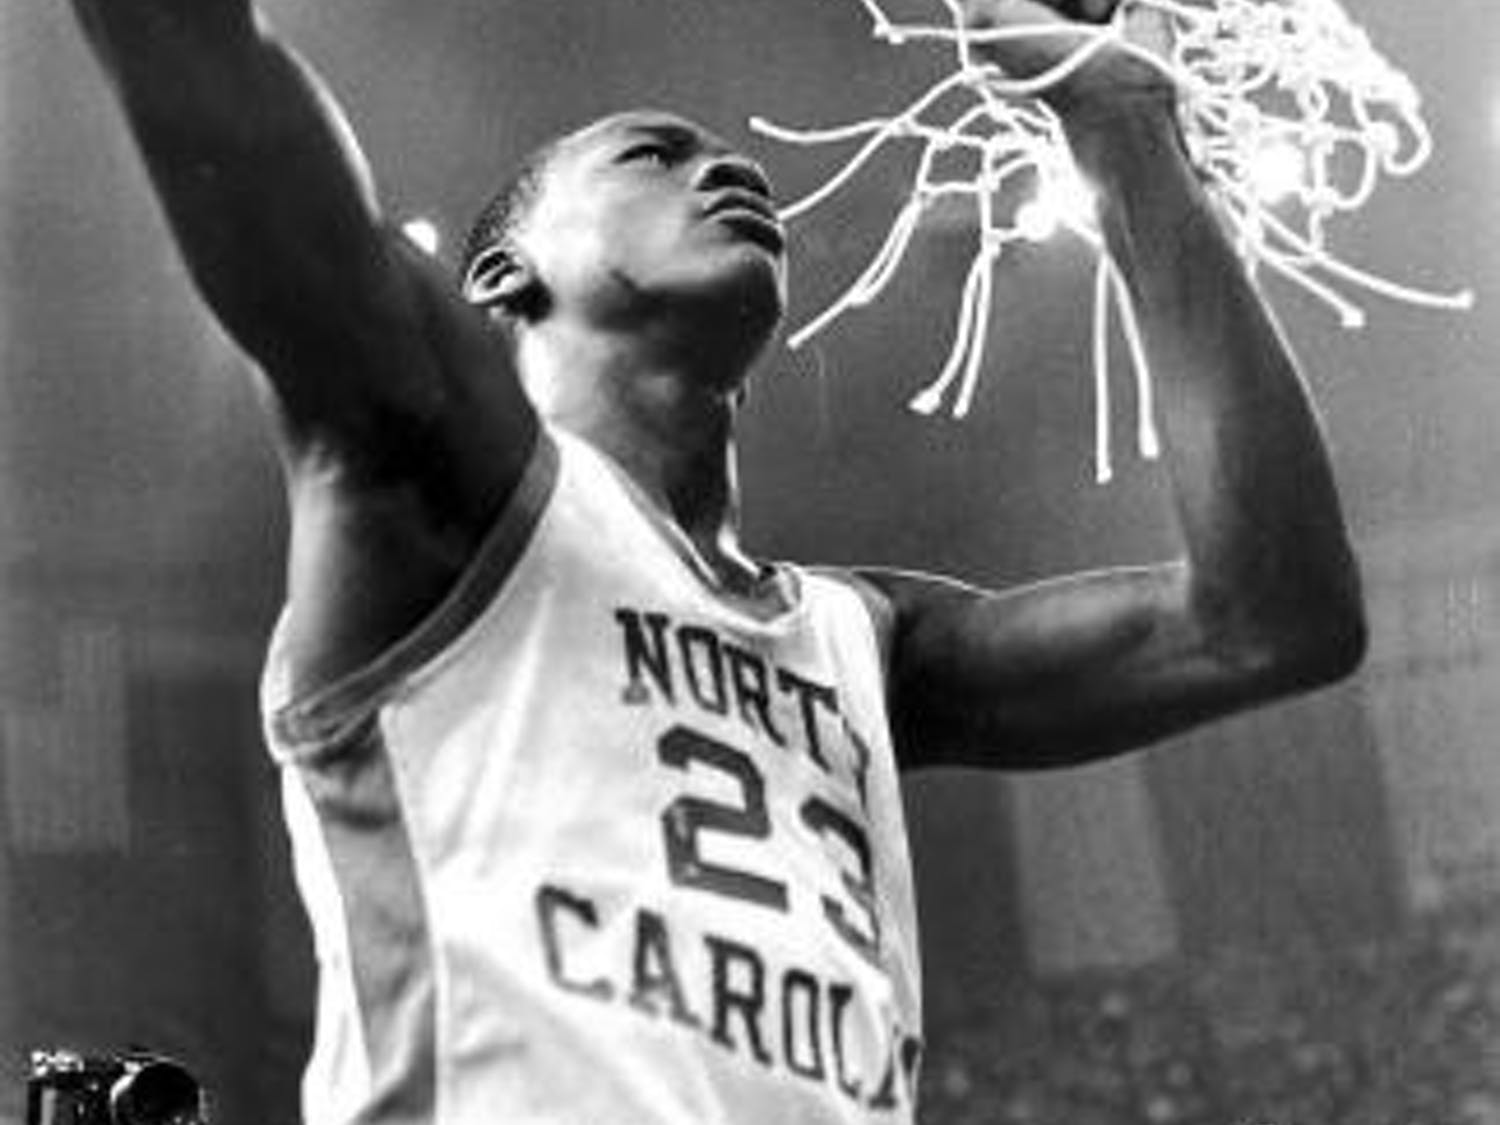 Michael Jordan helps cut down the nets after the 1982 NCAA National Championship. Photo courtesy of UNC Athletic Communications.